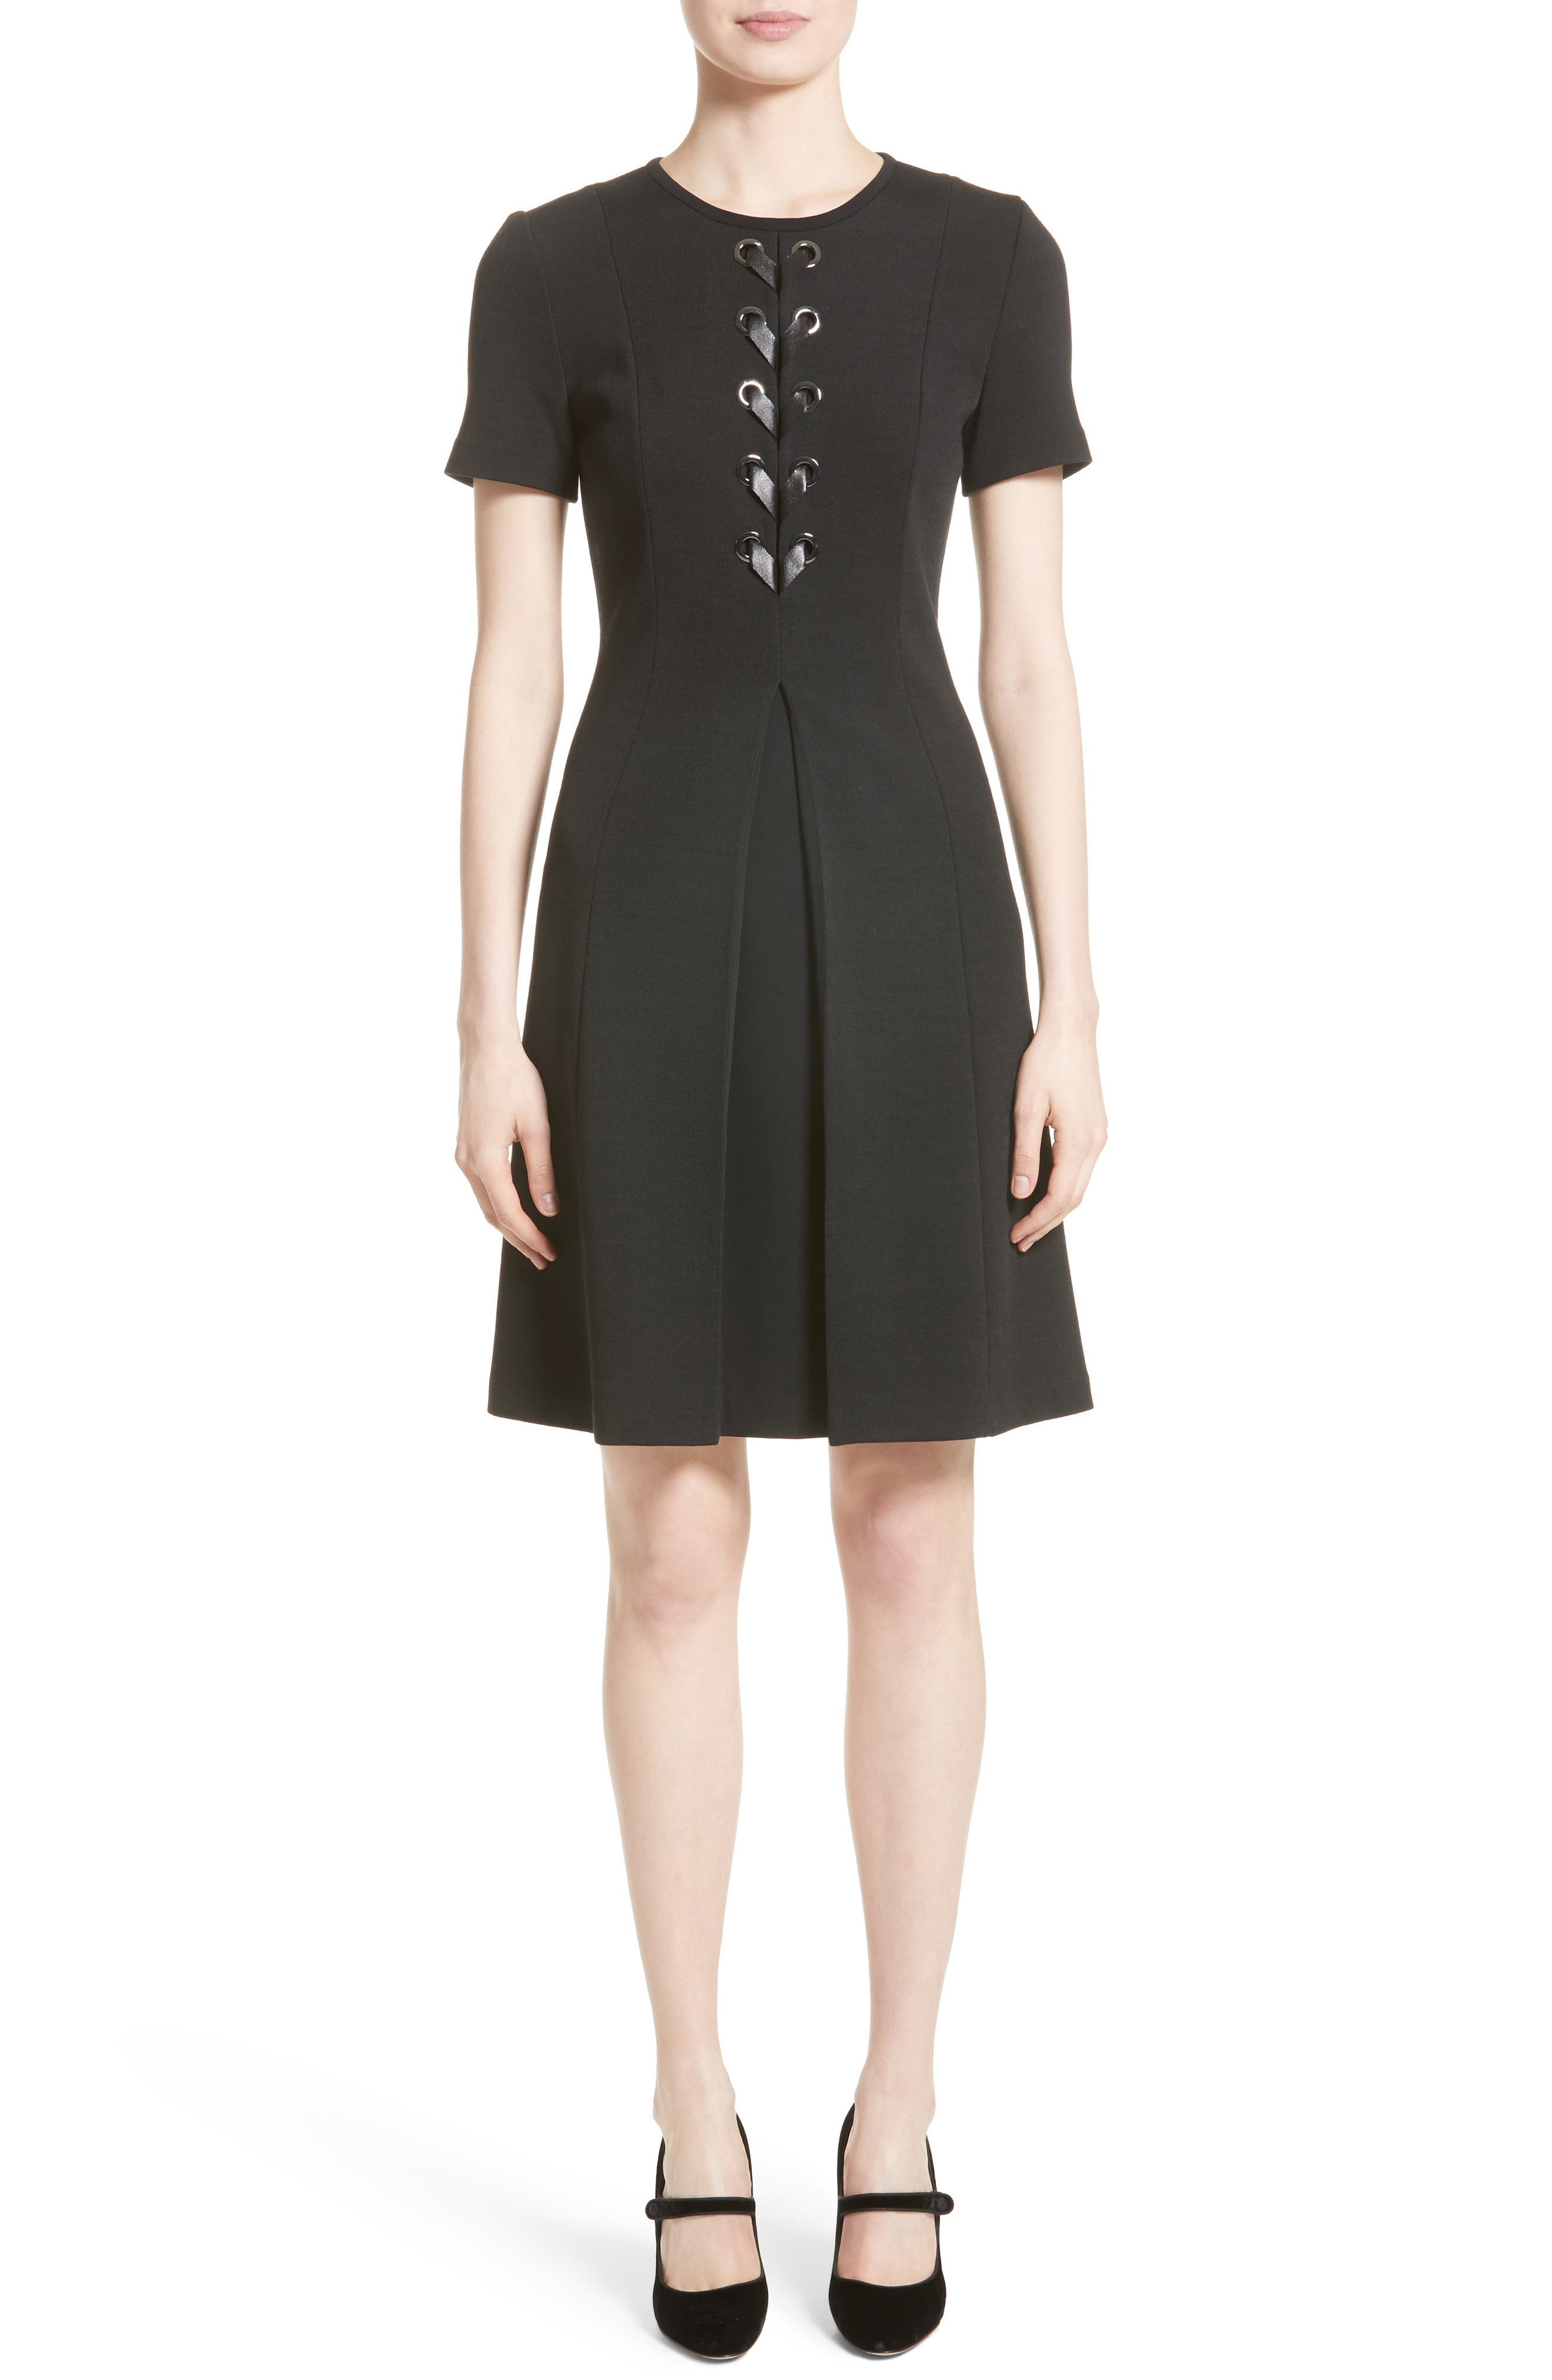 Alternate Image 1 Selected - St. John Collection Lace-Up Milano Knit Dress